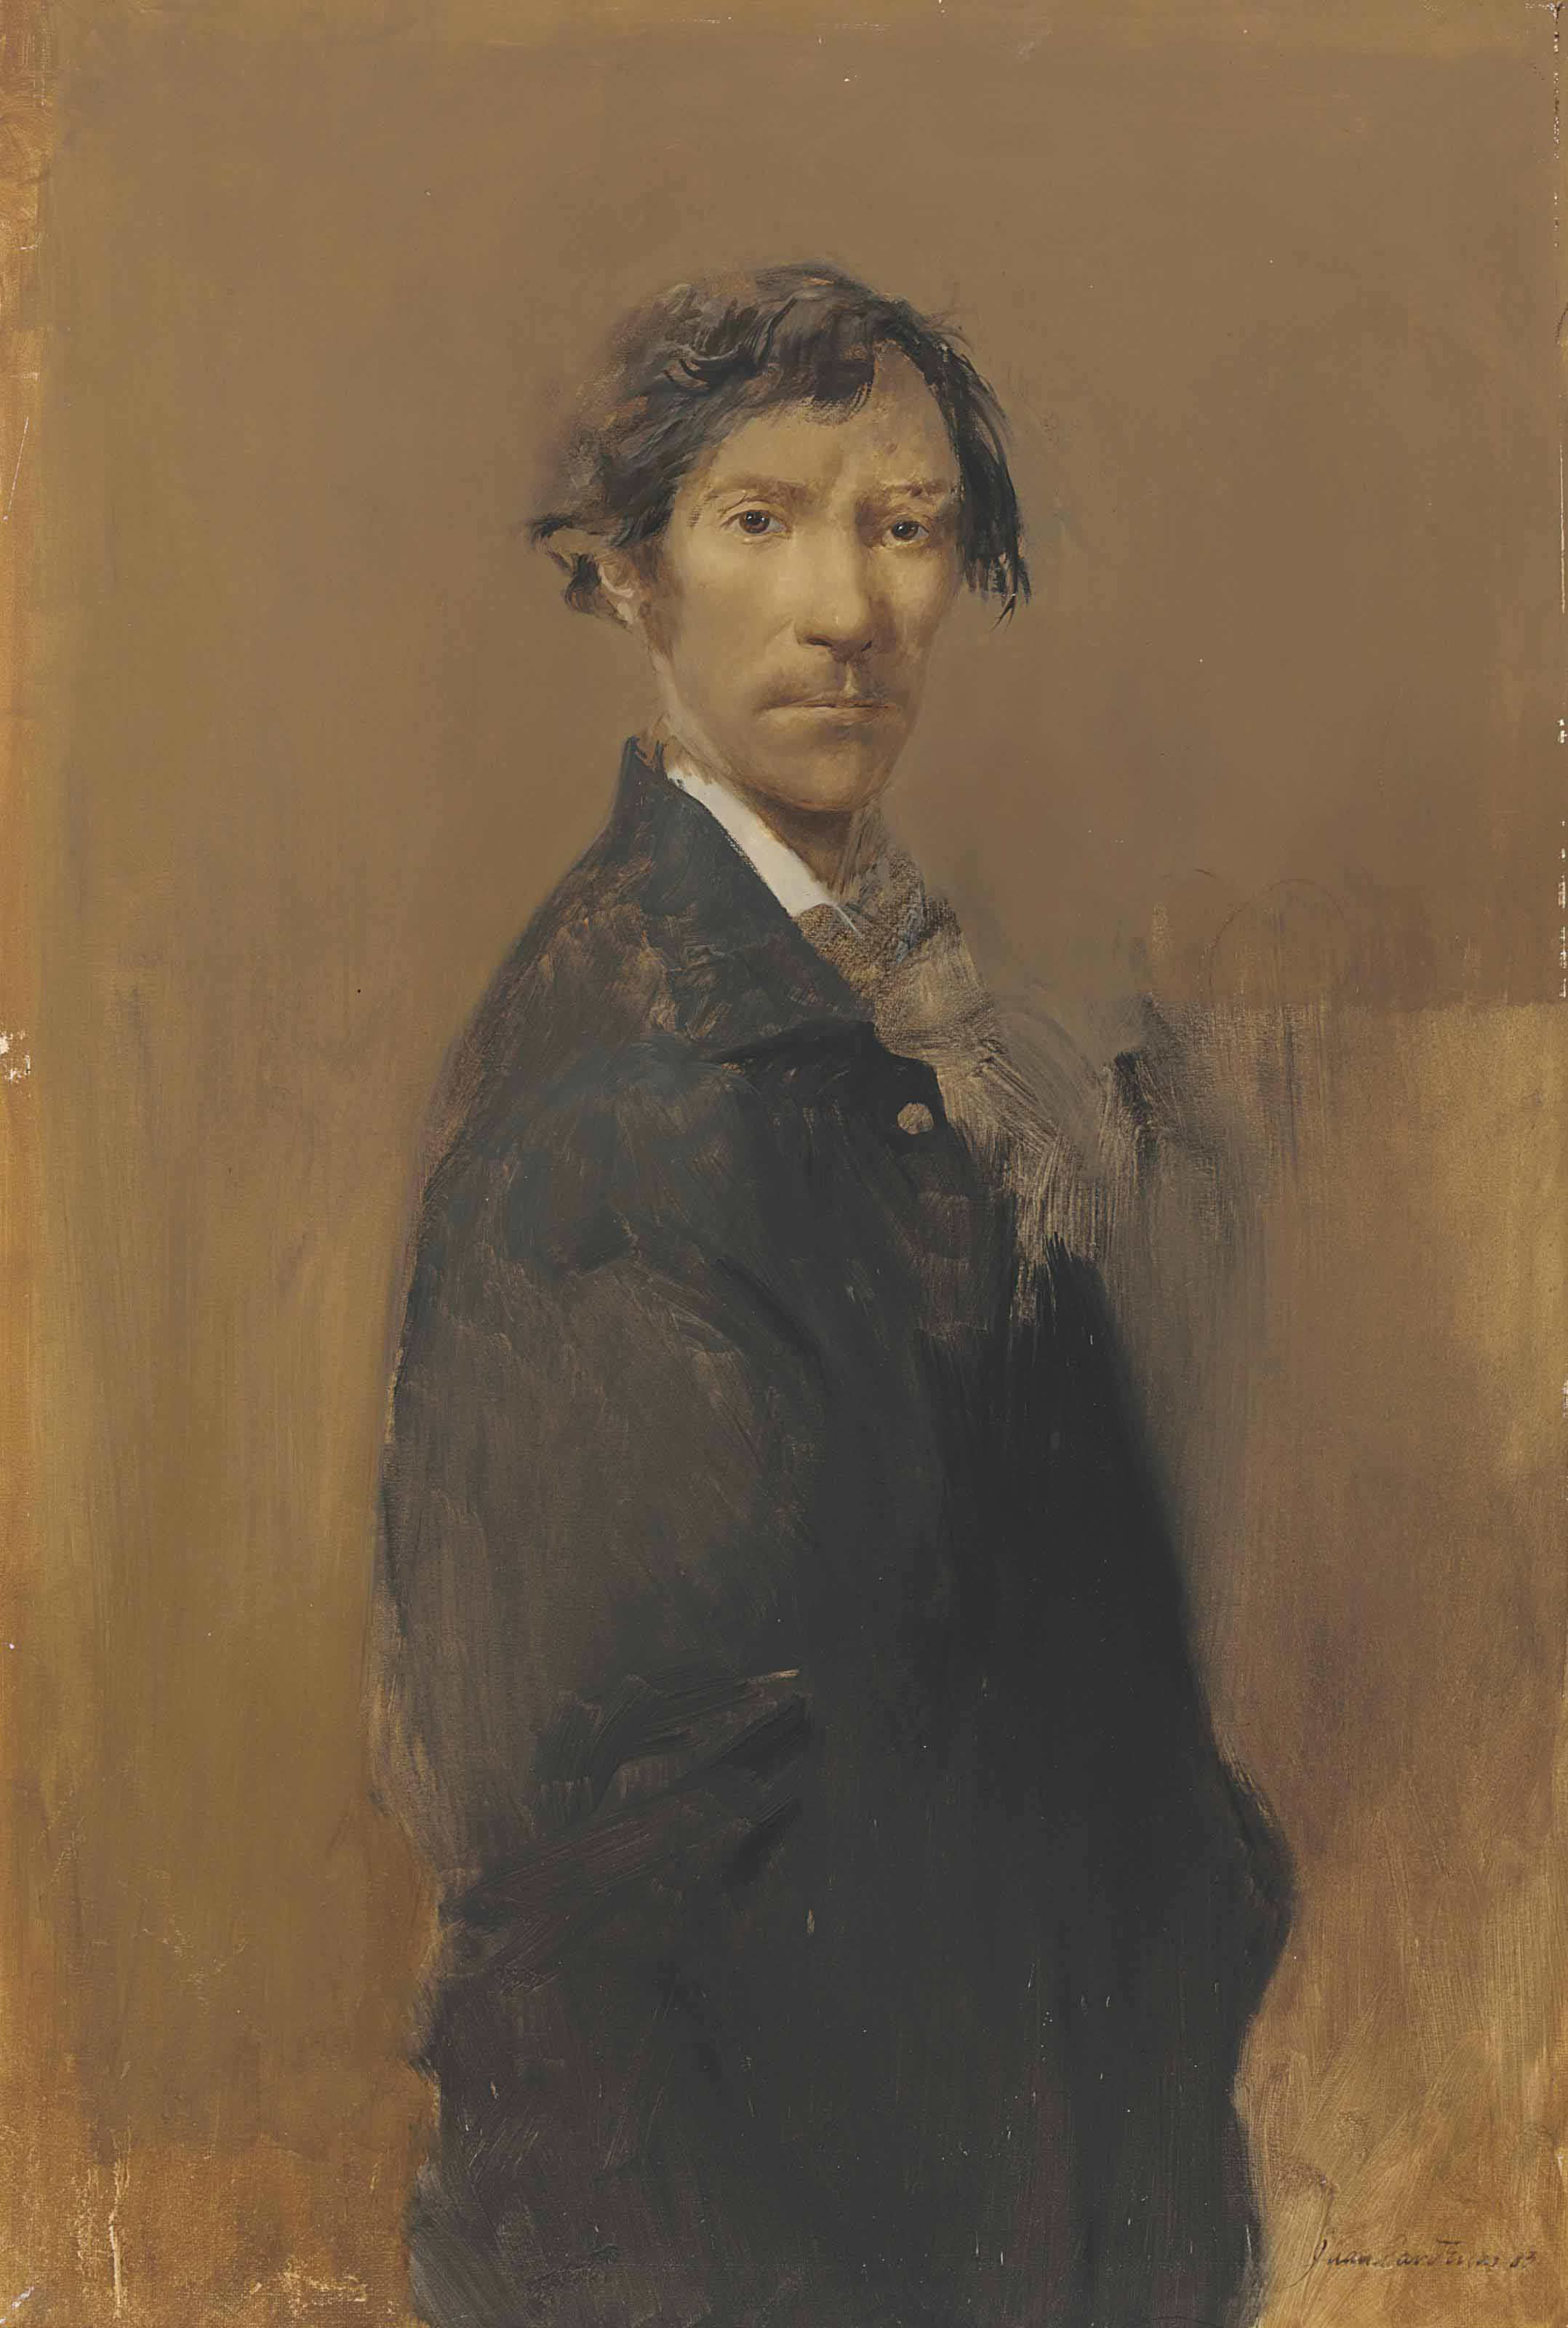 Self Portrait with Black Suit